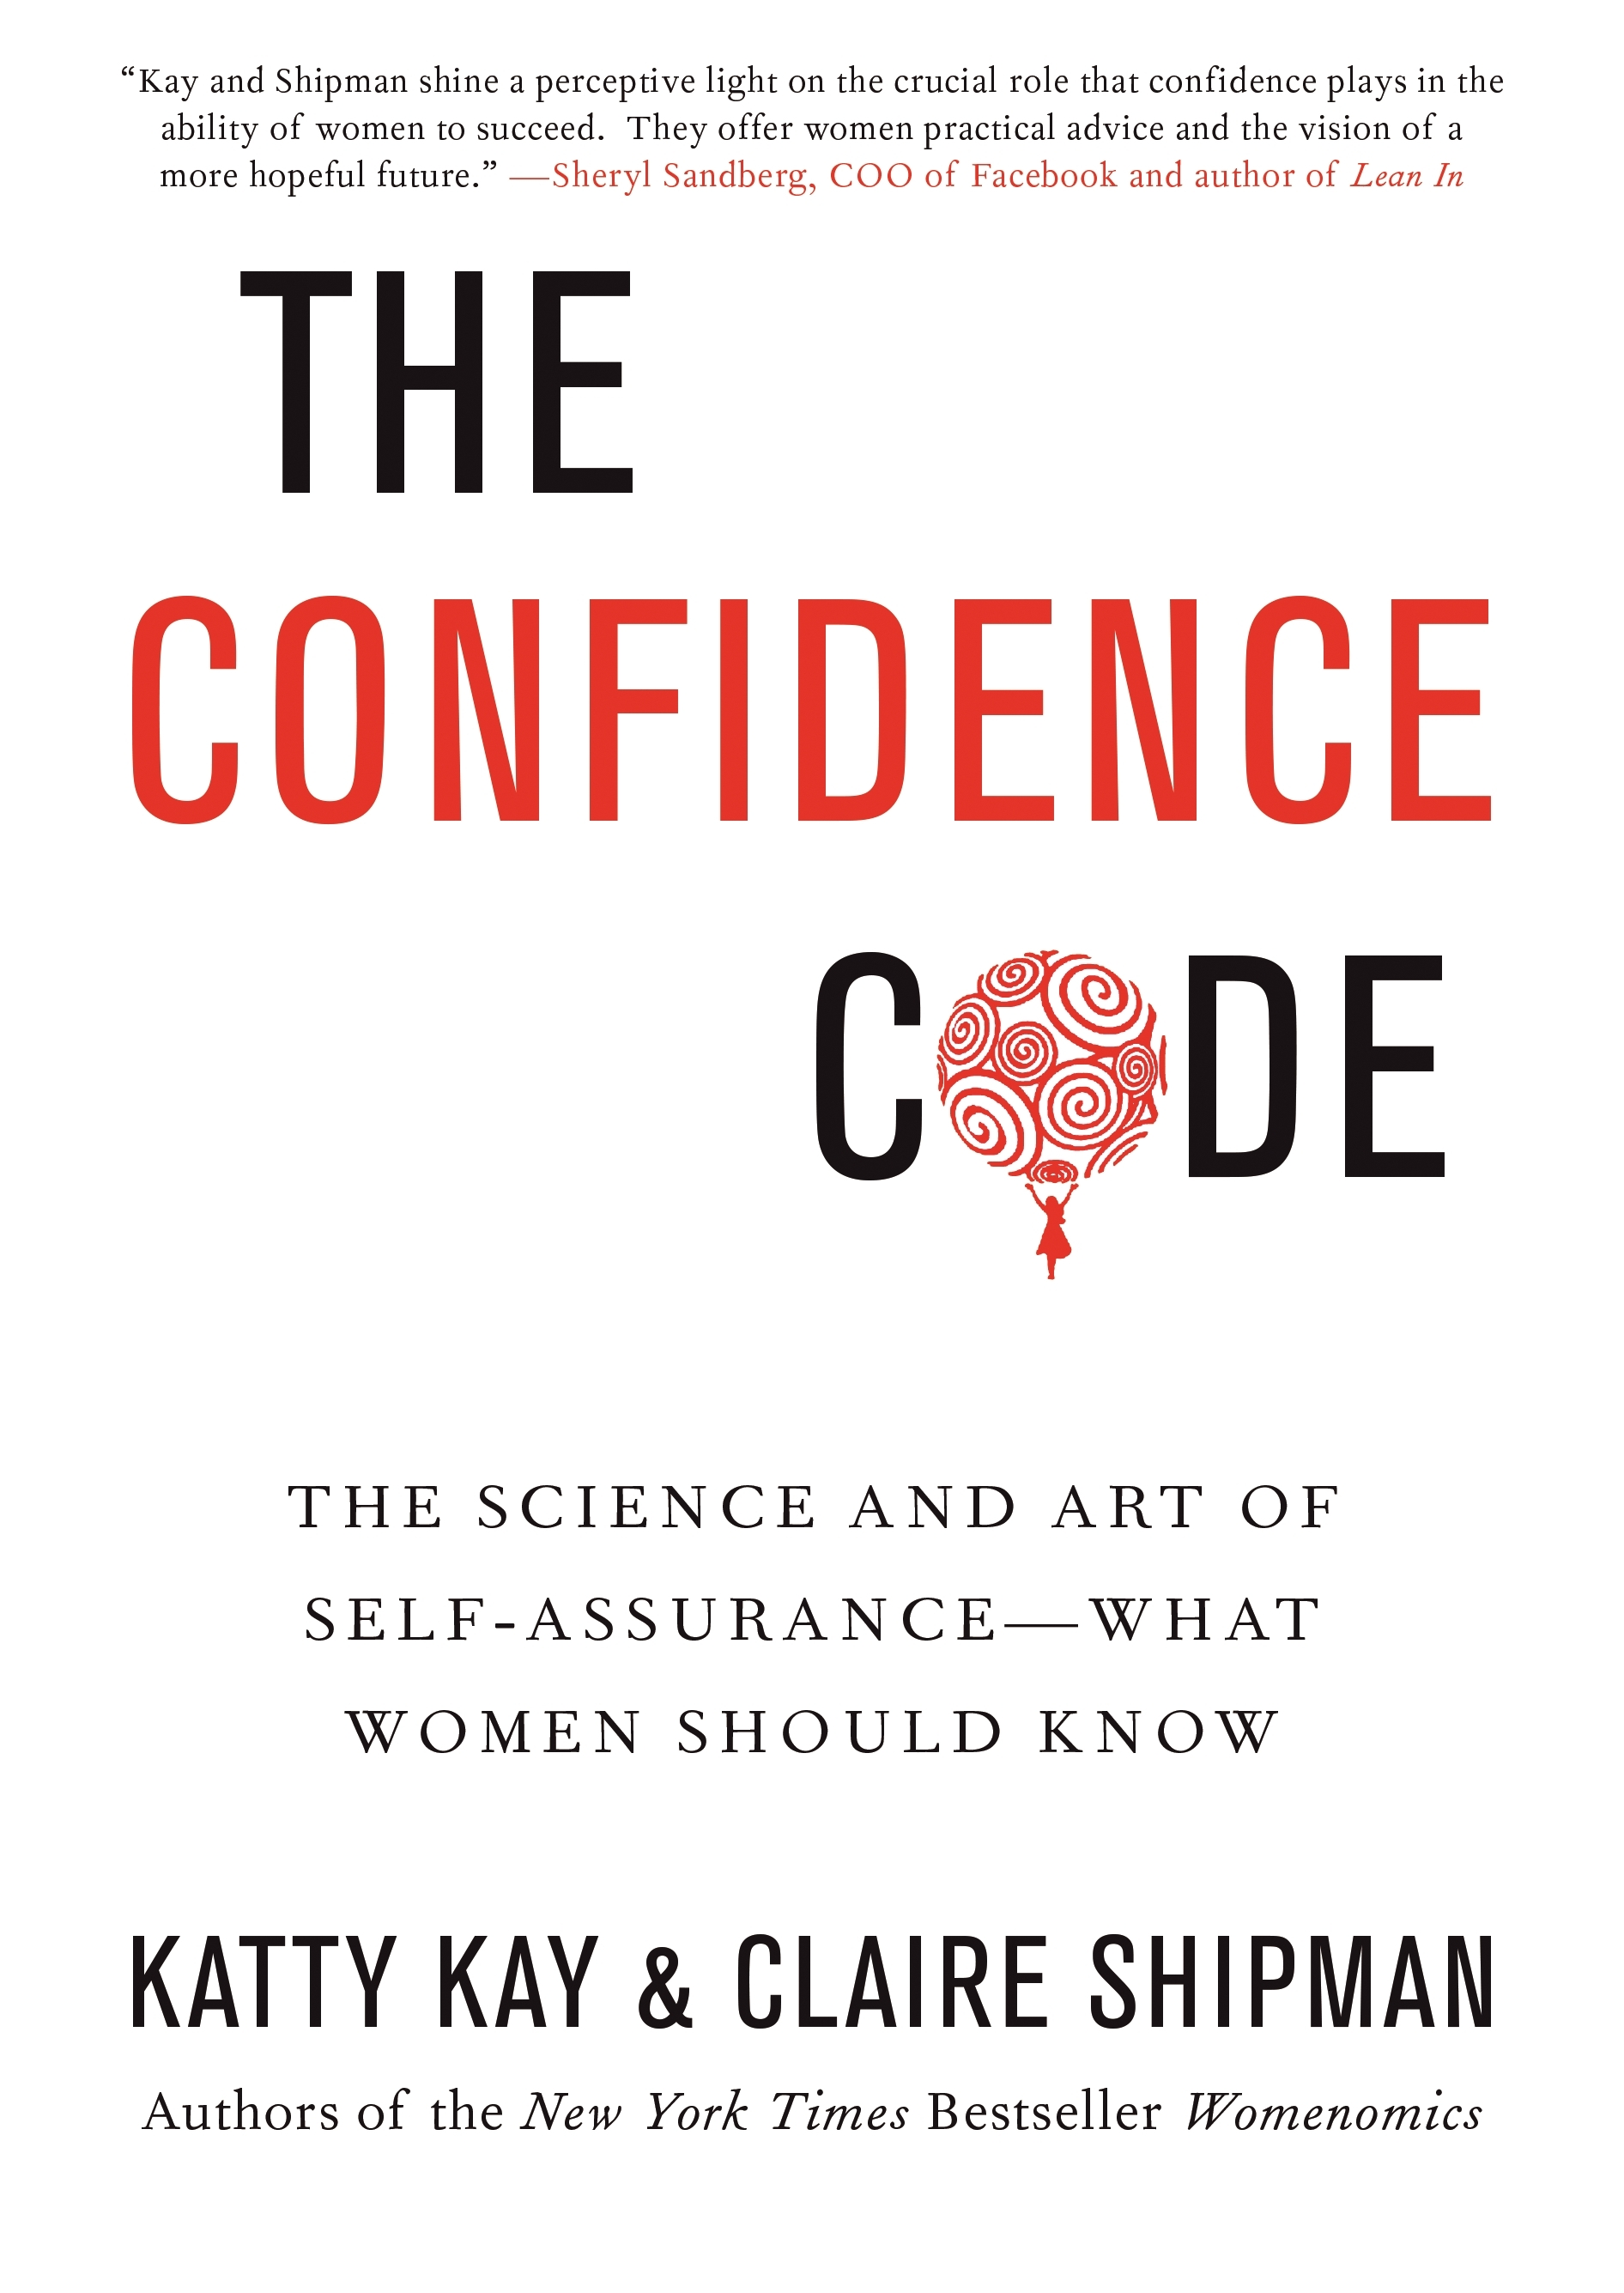 Confidence Code book cover